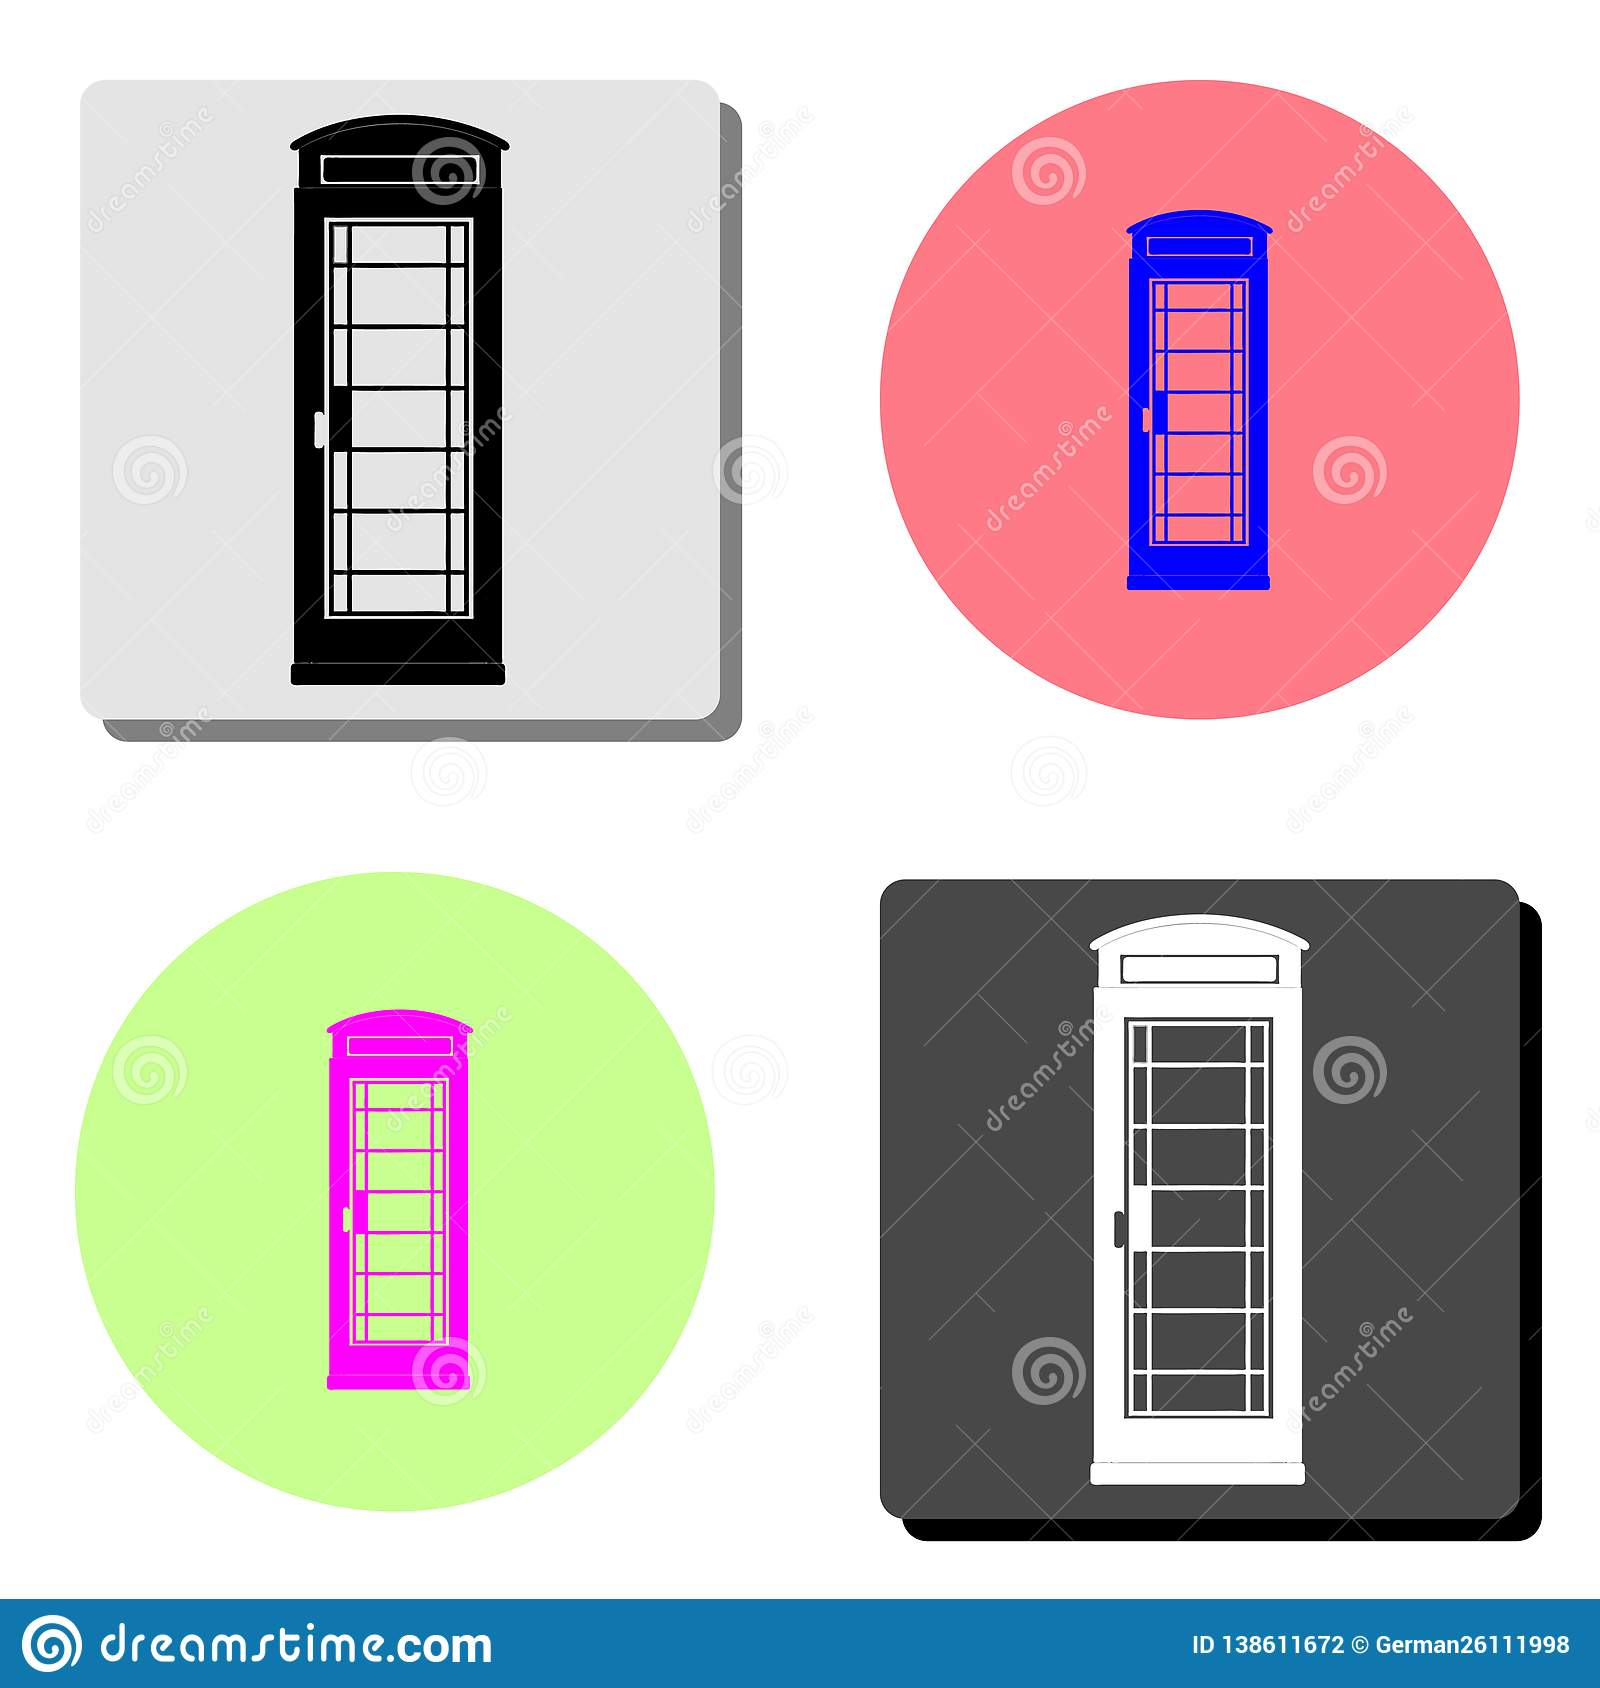 London telephone booth. flat vector icon